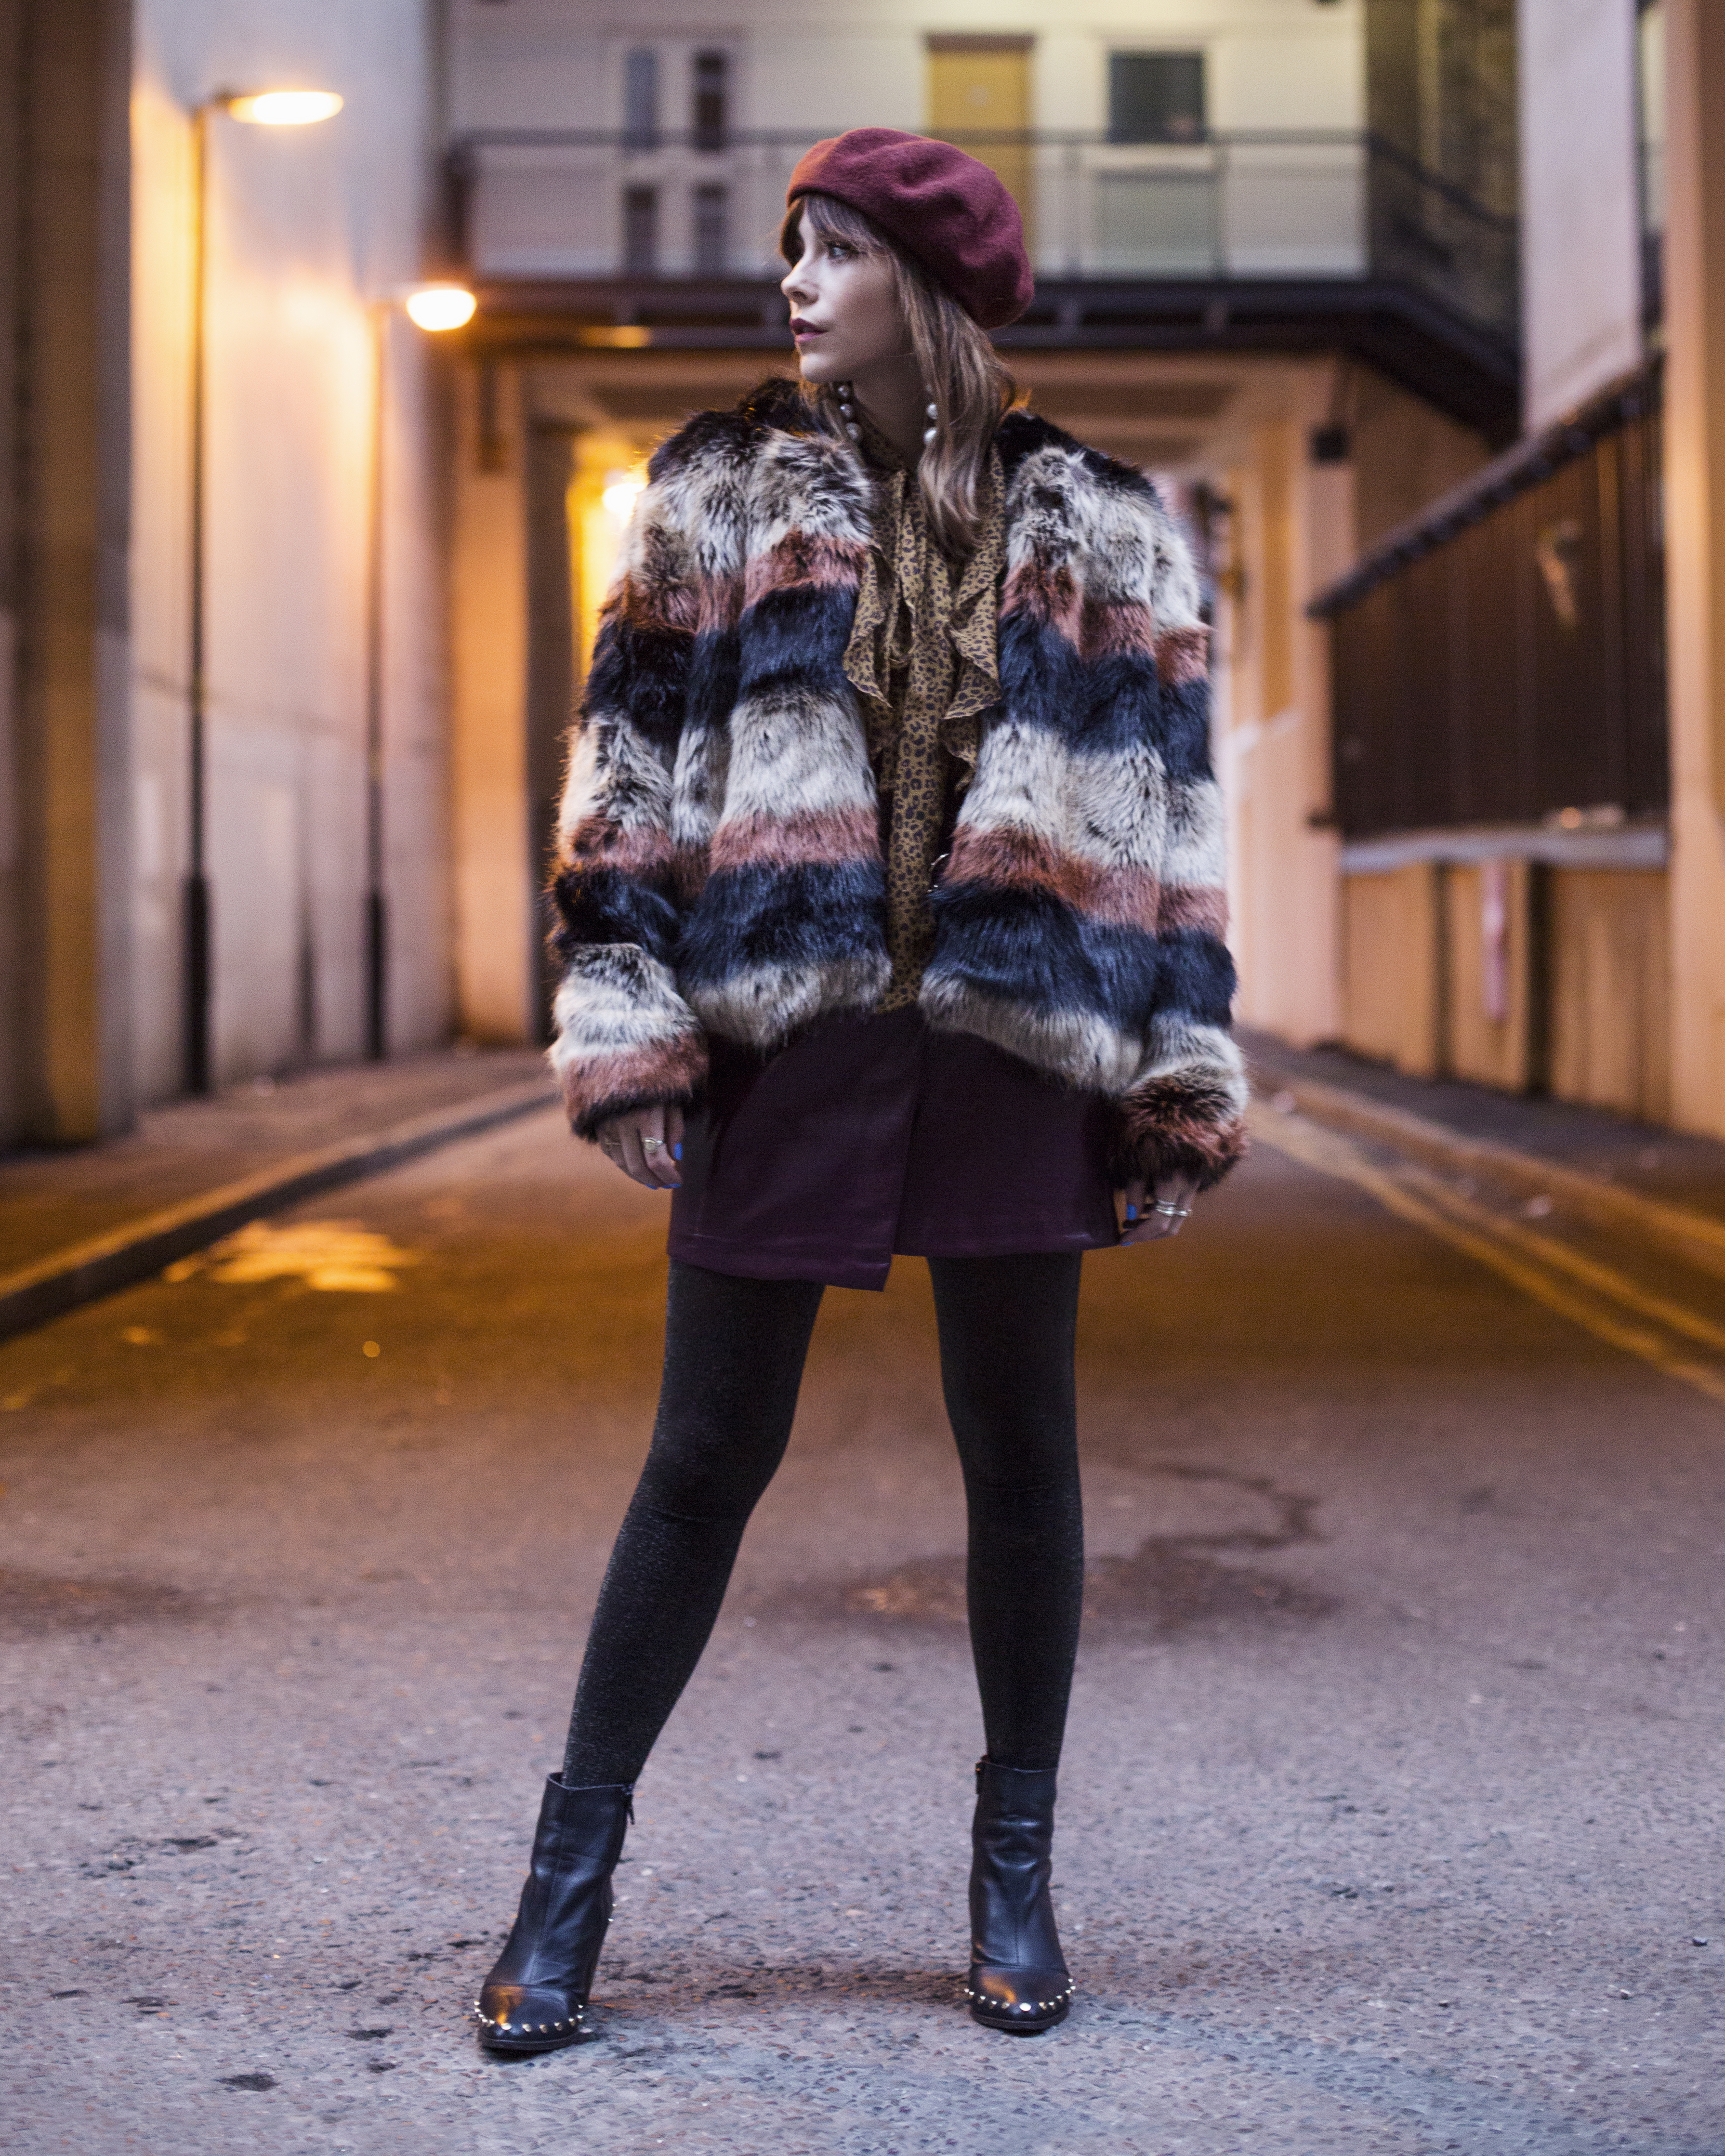 MEGAN ELLABY SHOWS HOW TO WEAR THE MAXIMALISM TREND